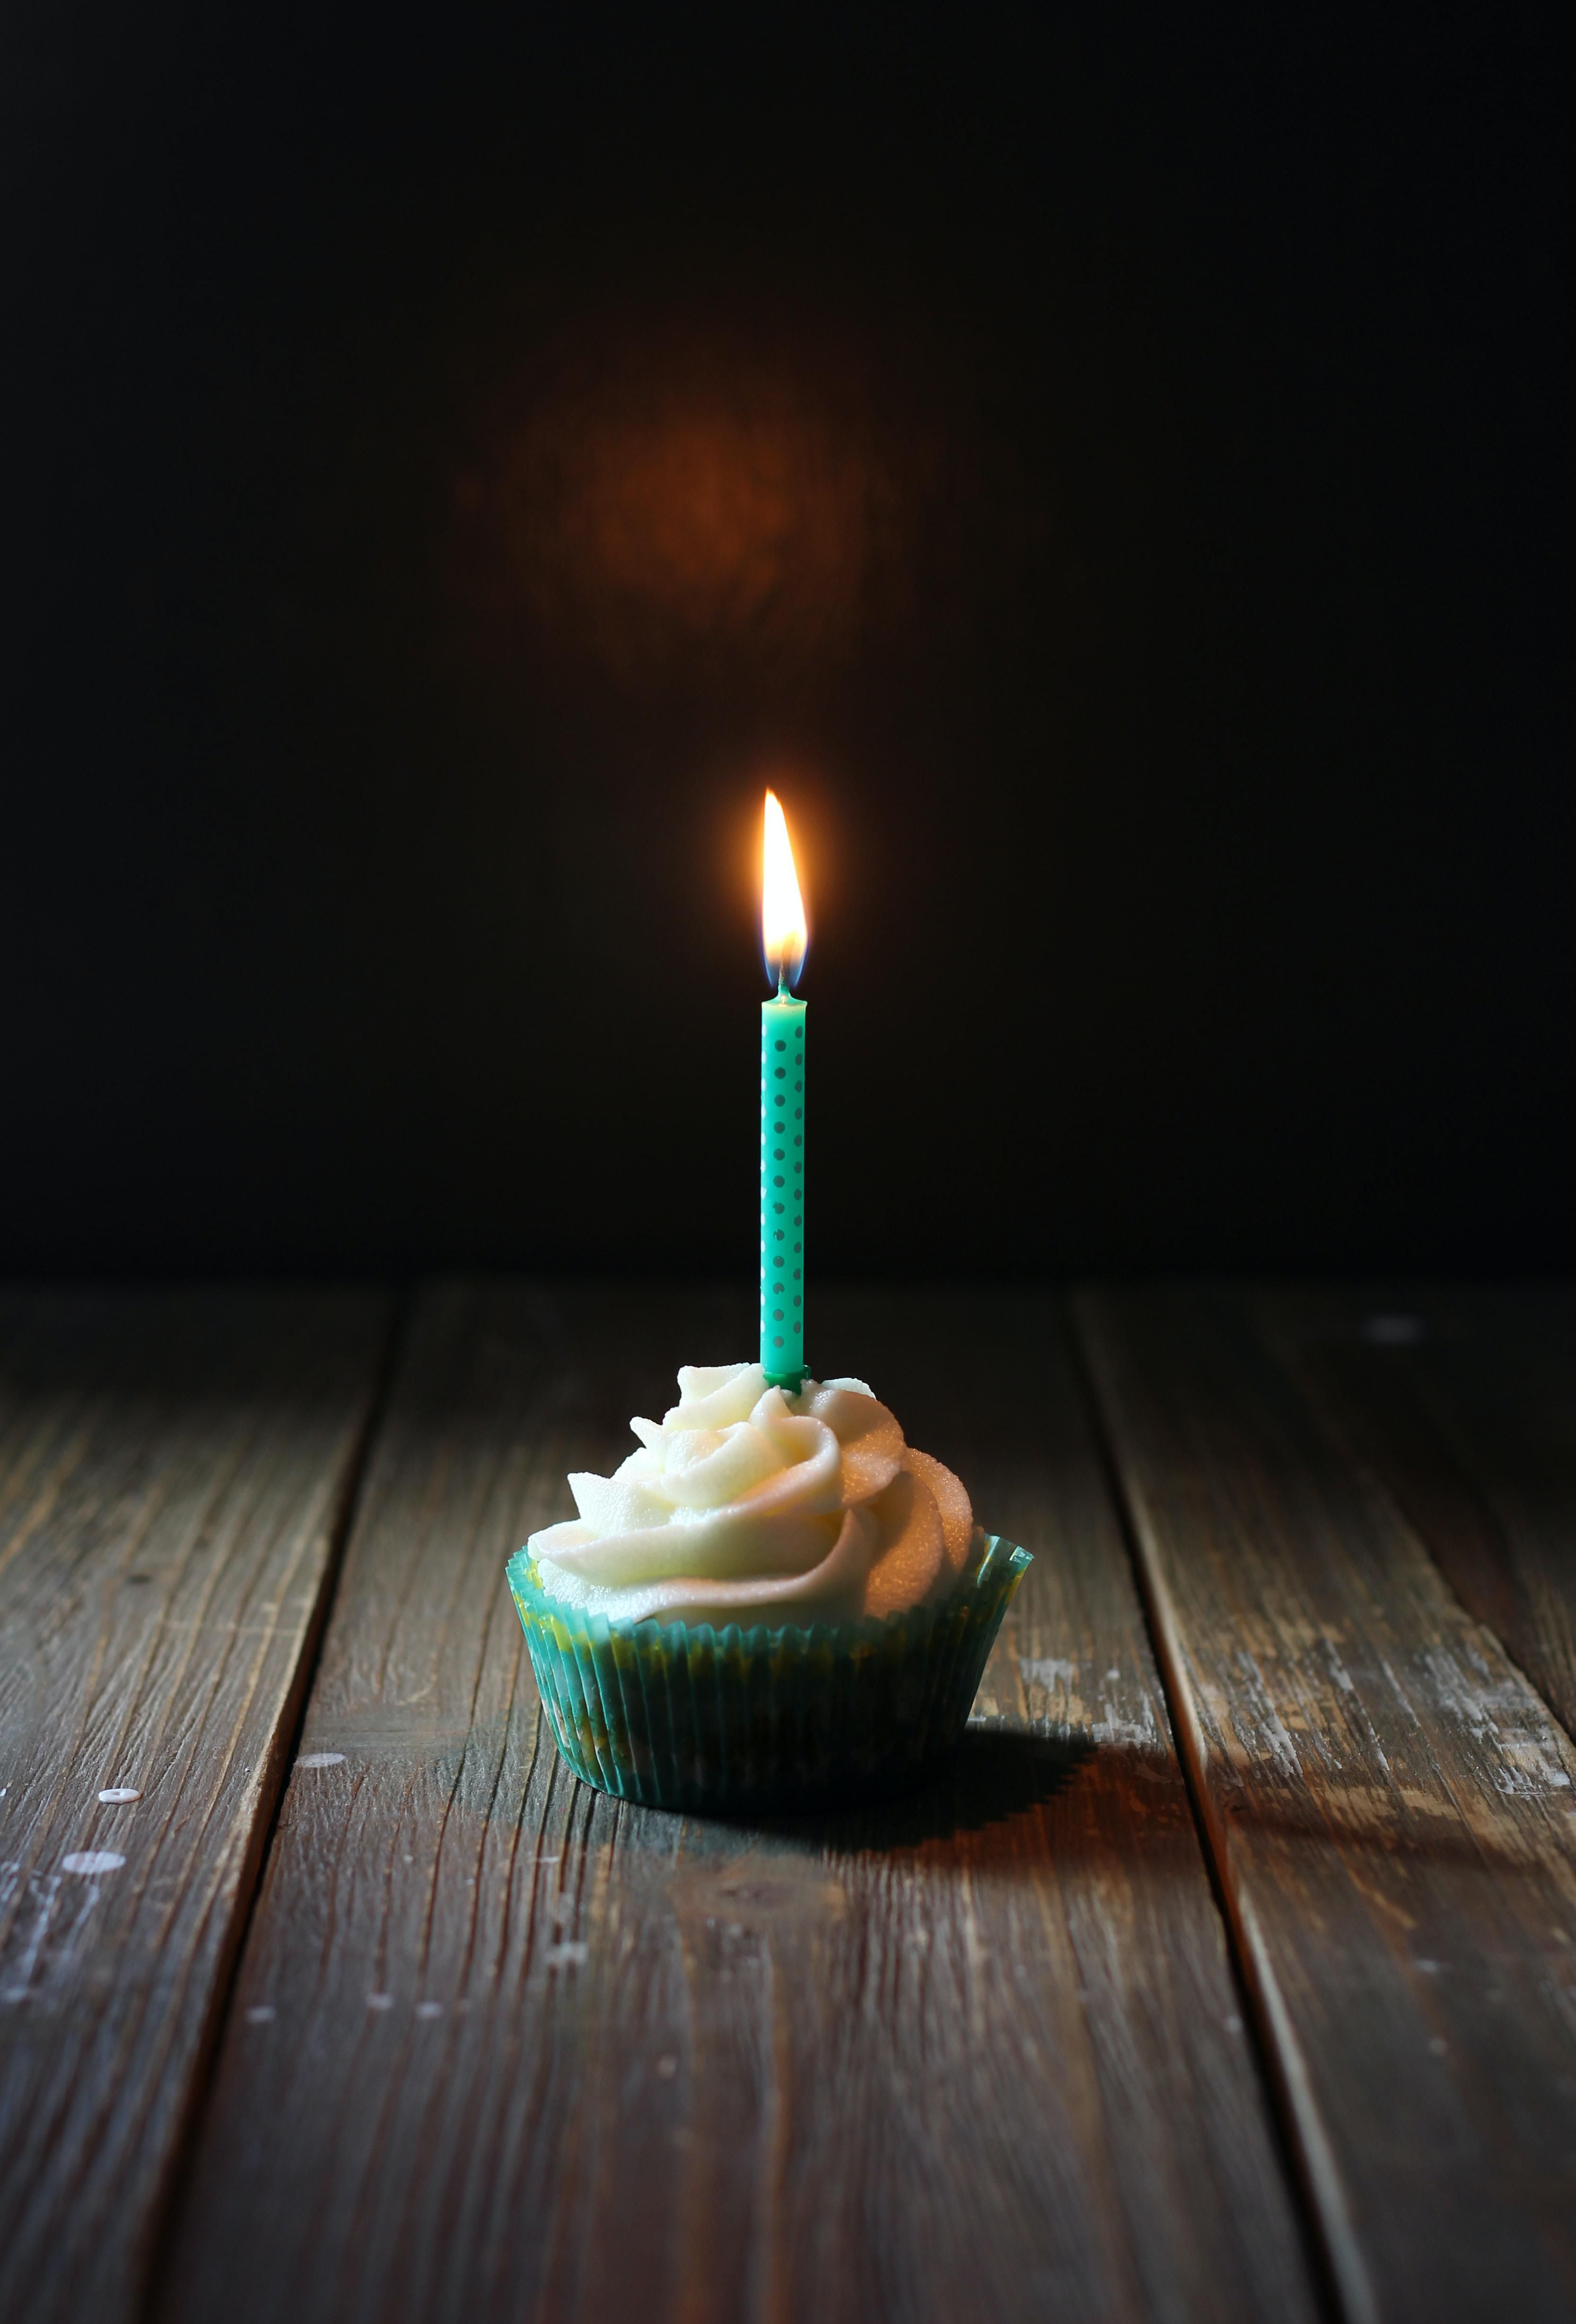 one candle on cupcake